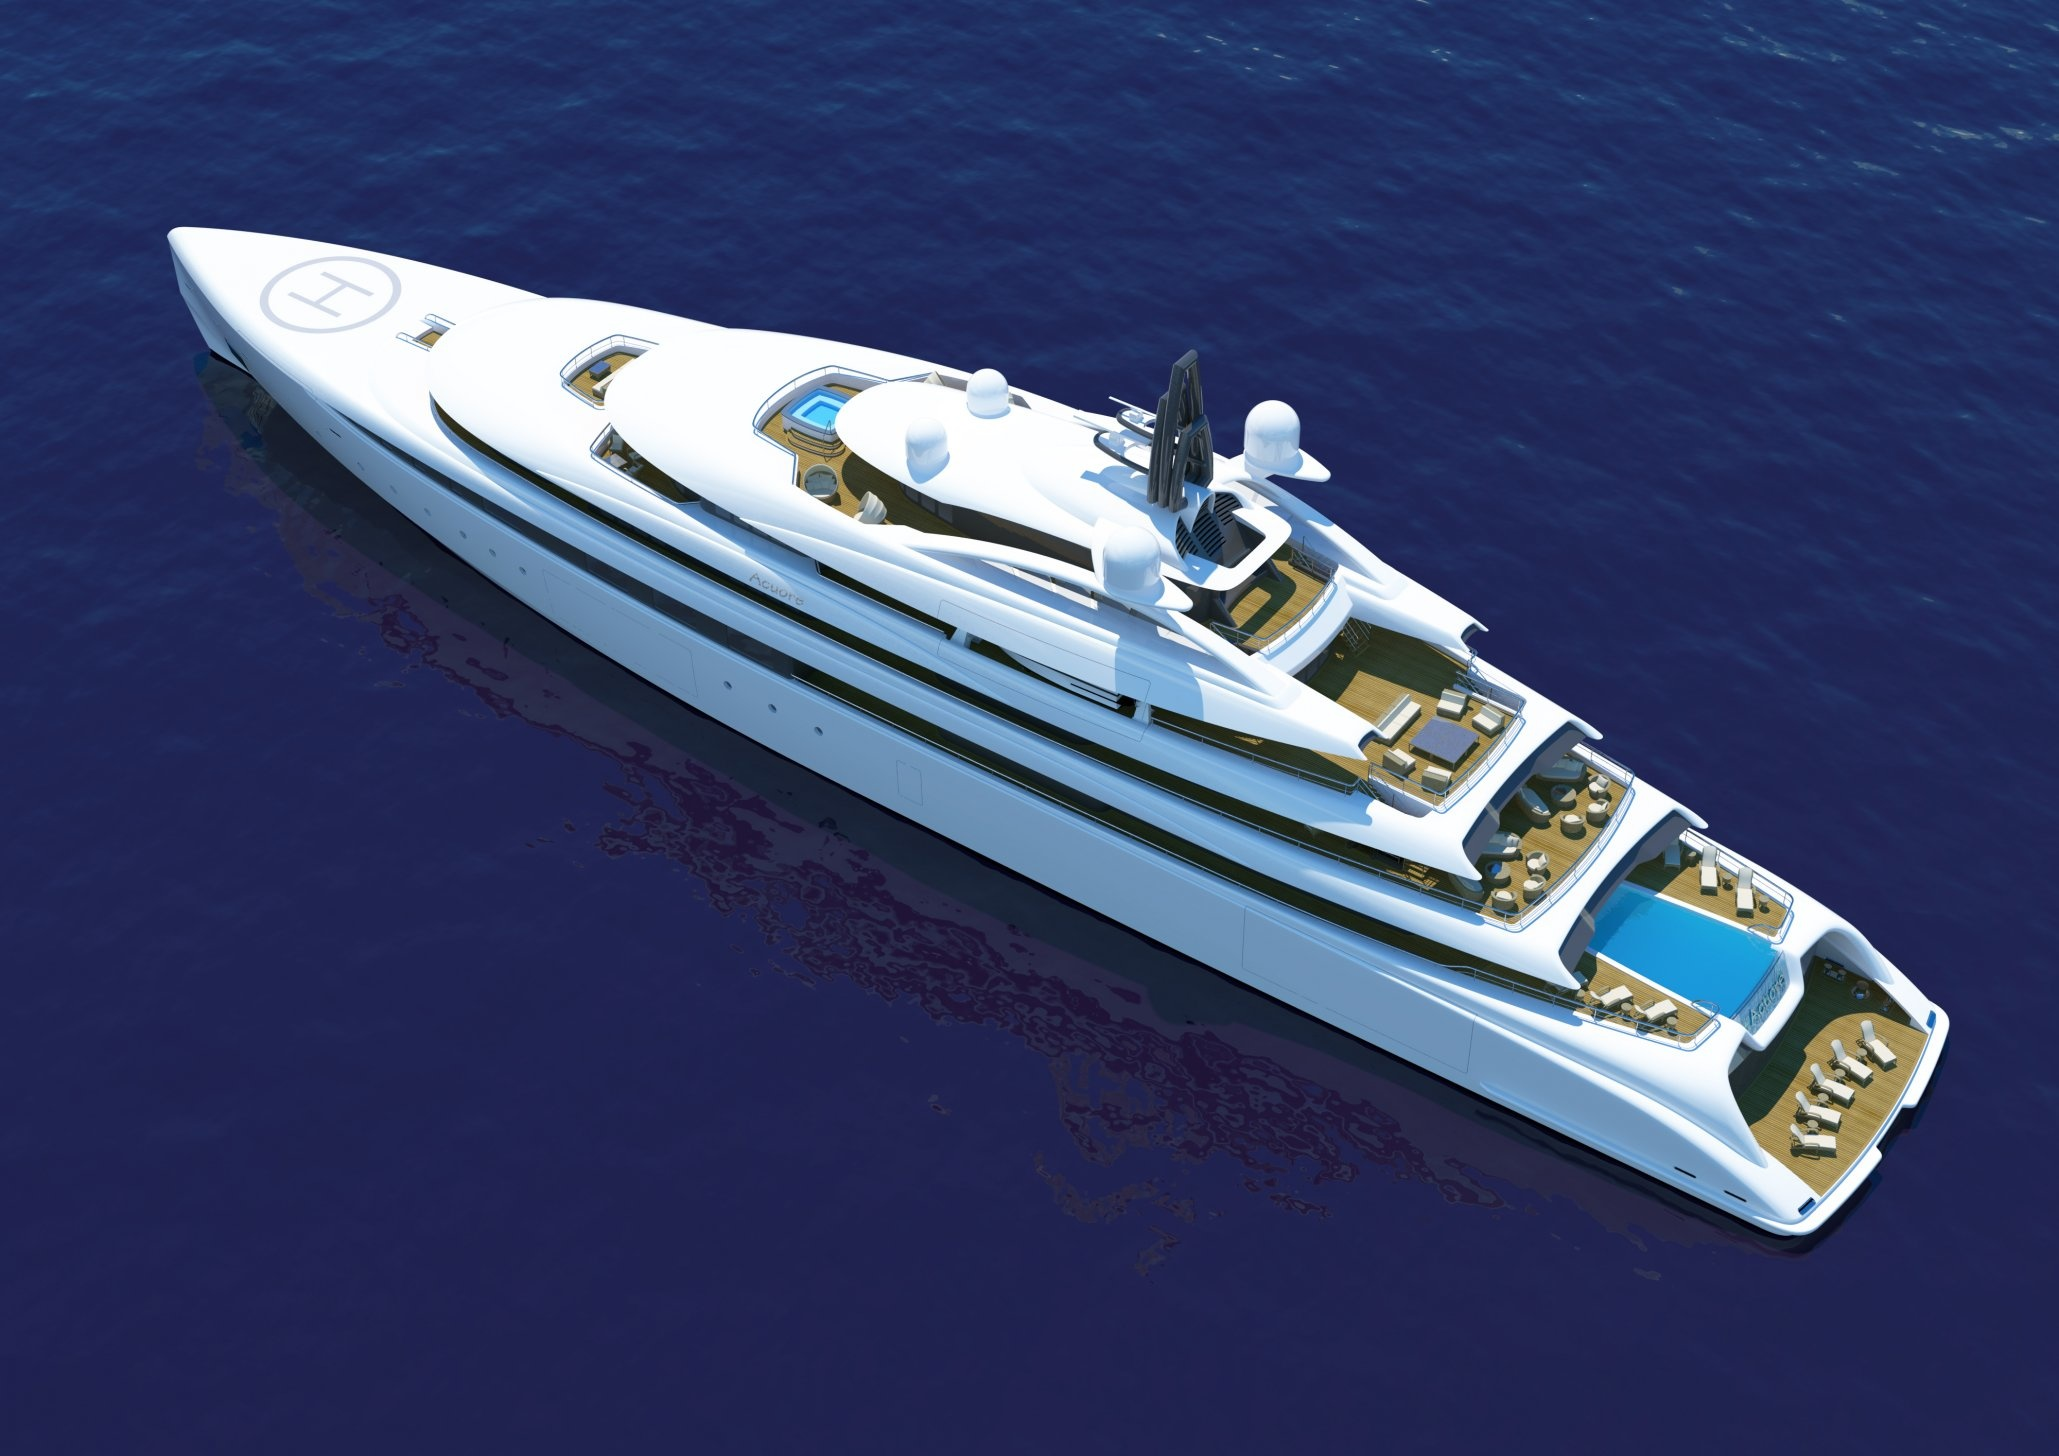 Meet the 360-Foot Superyacht with a Glass Shark Fin from Monaco